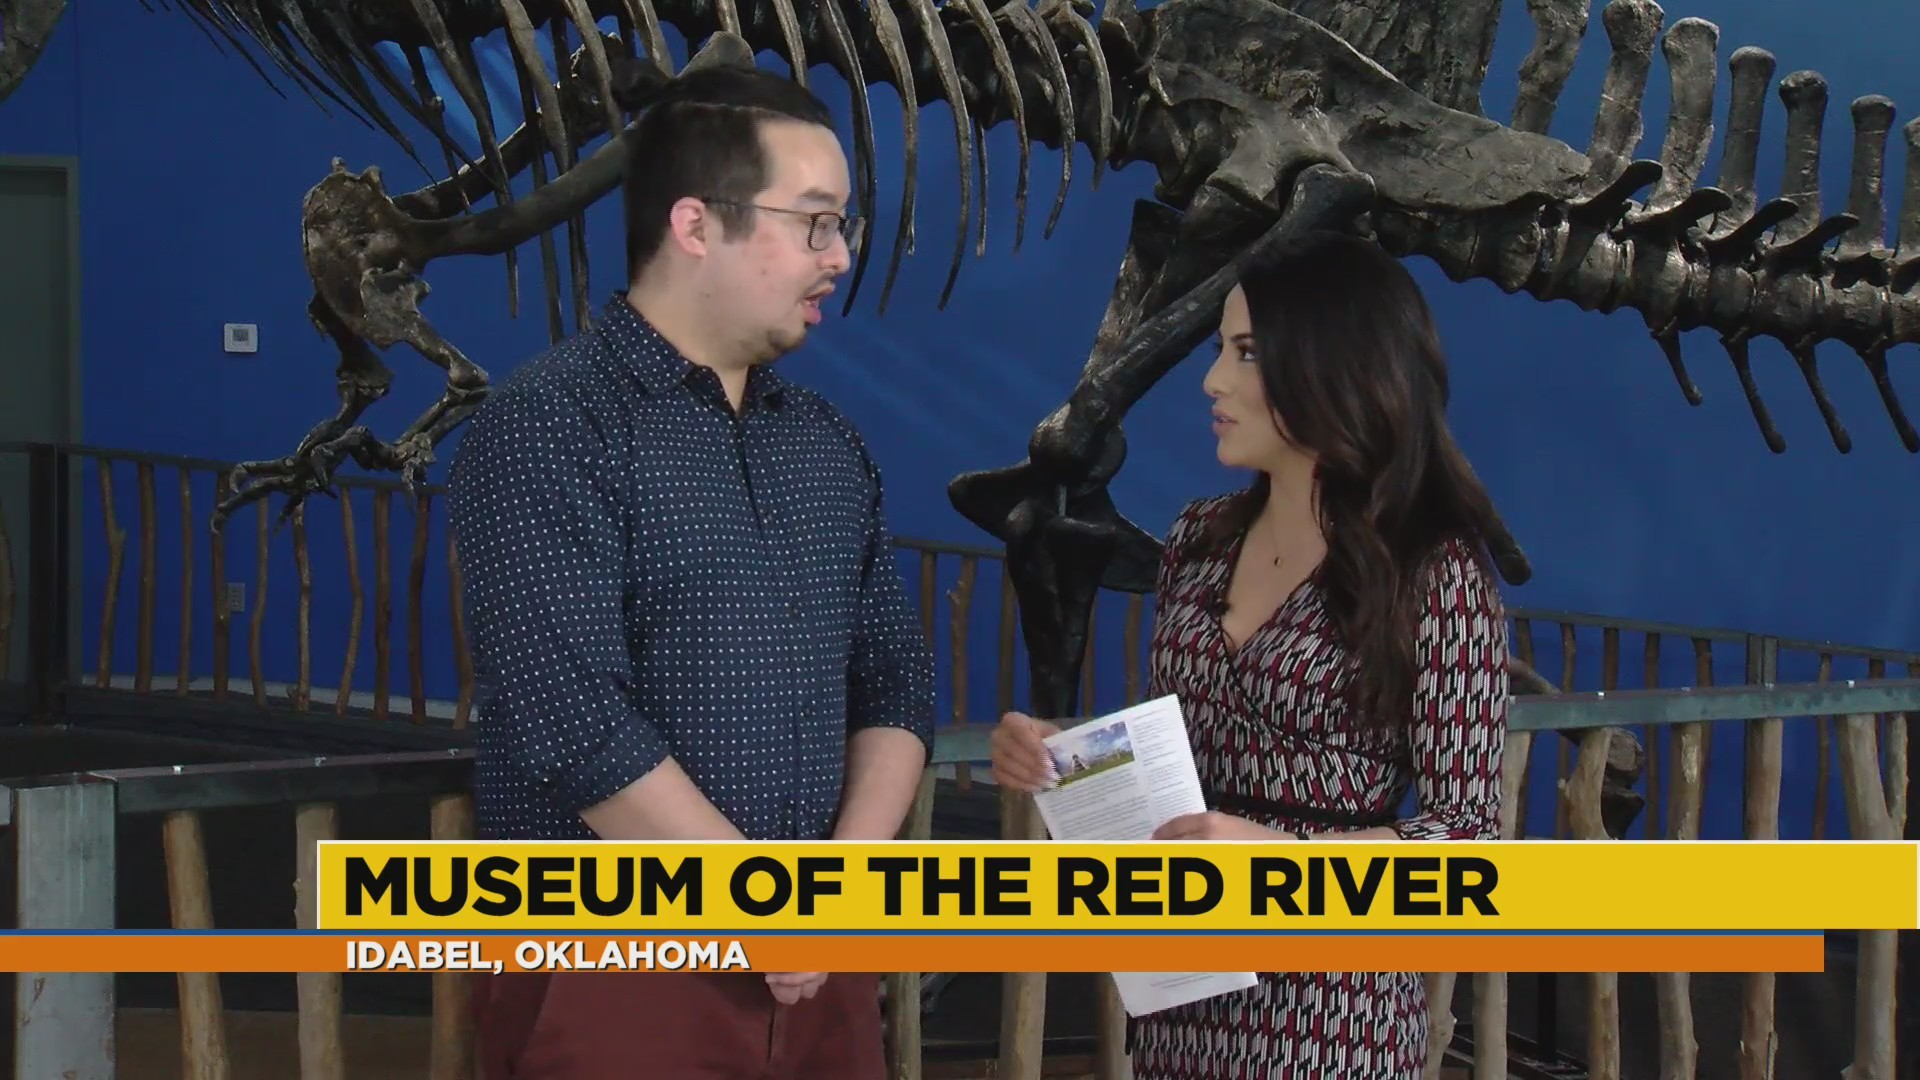 Museum of the Red River